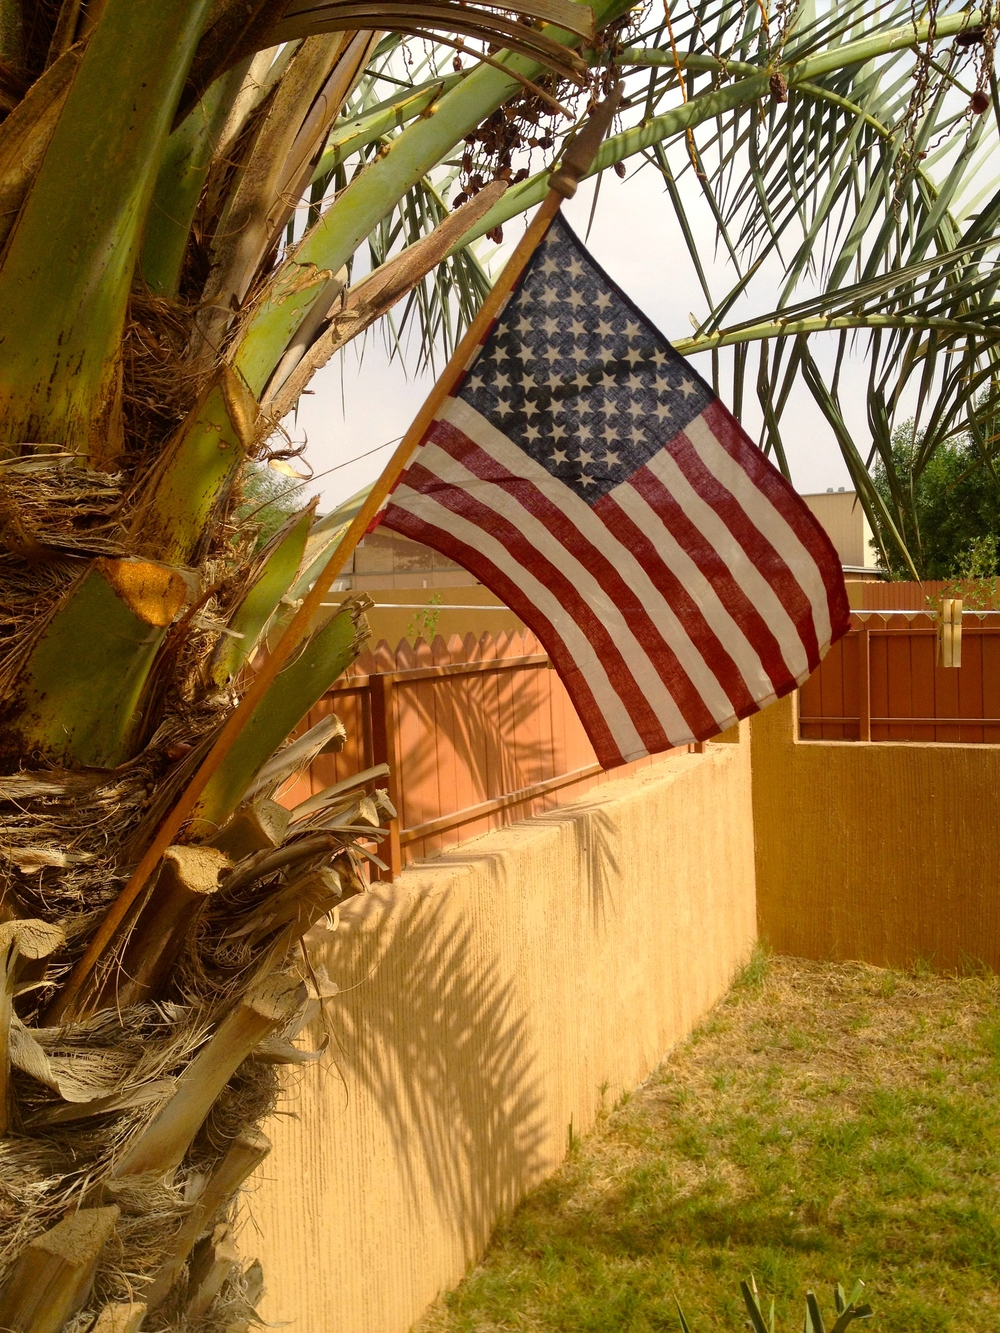 My gift flag flying proudly in the backyard of my villa in Riyadh